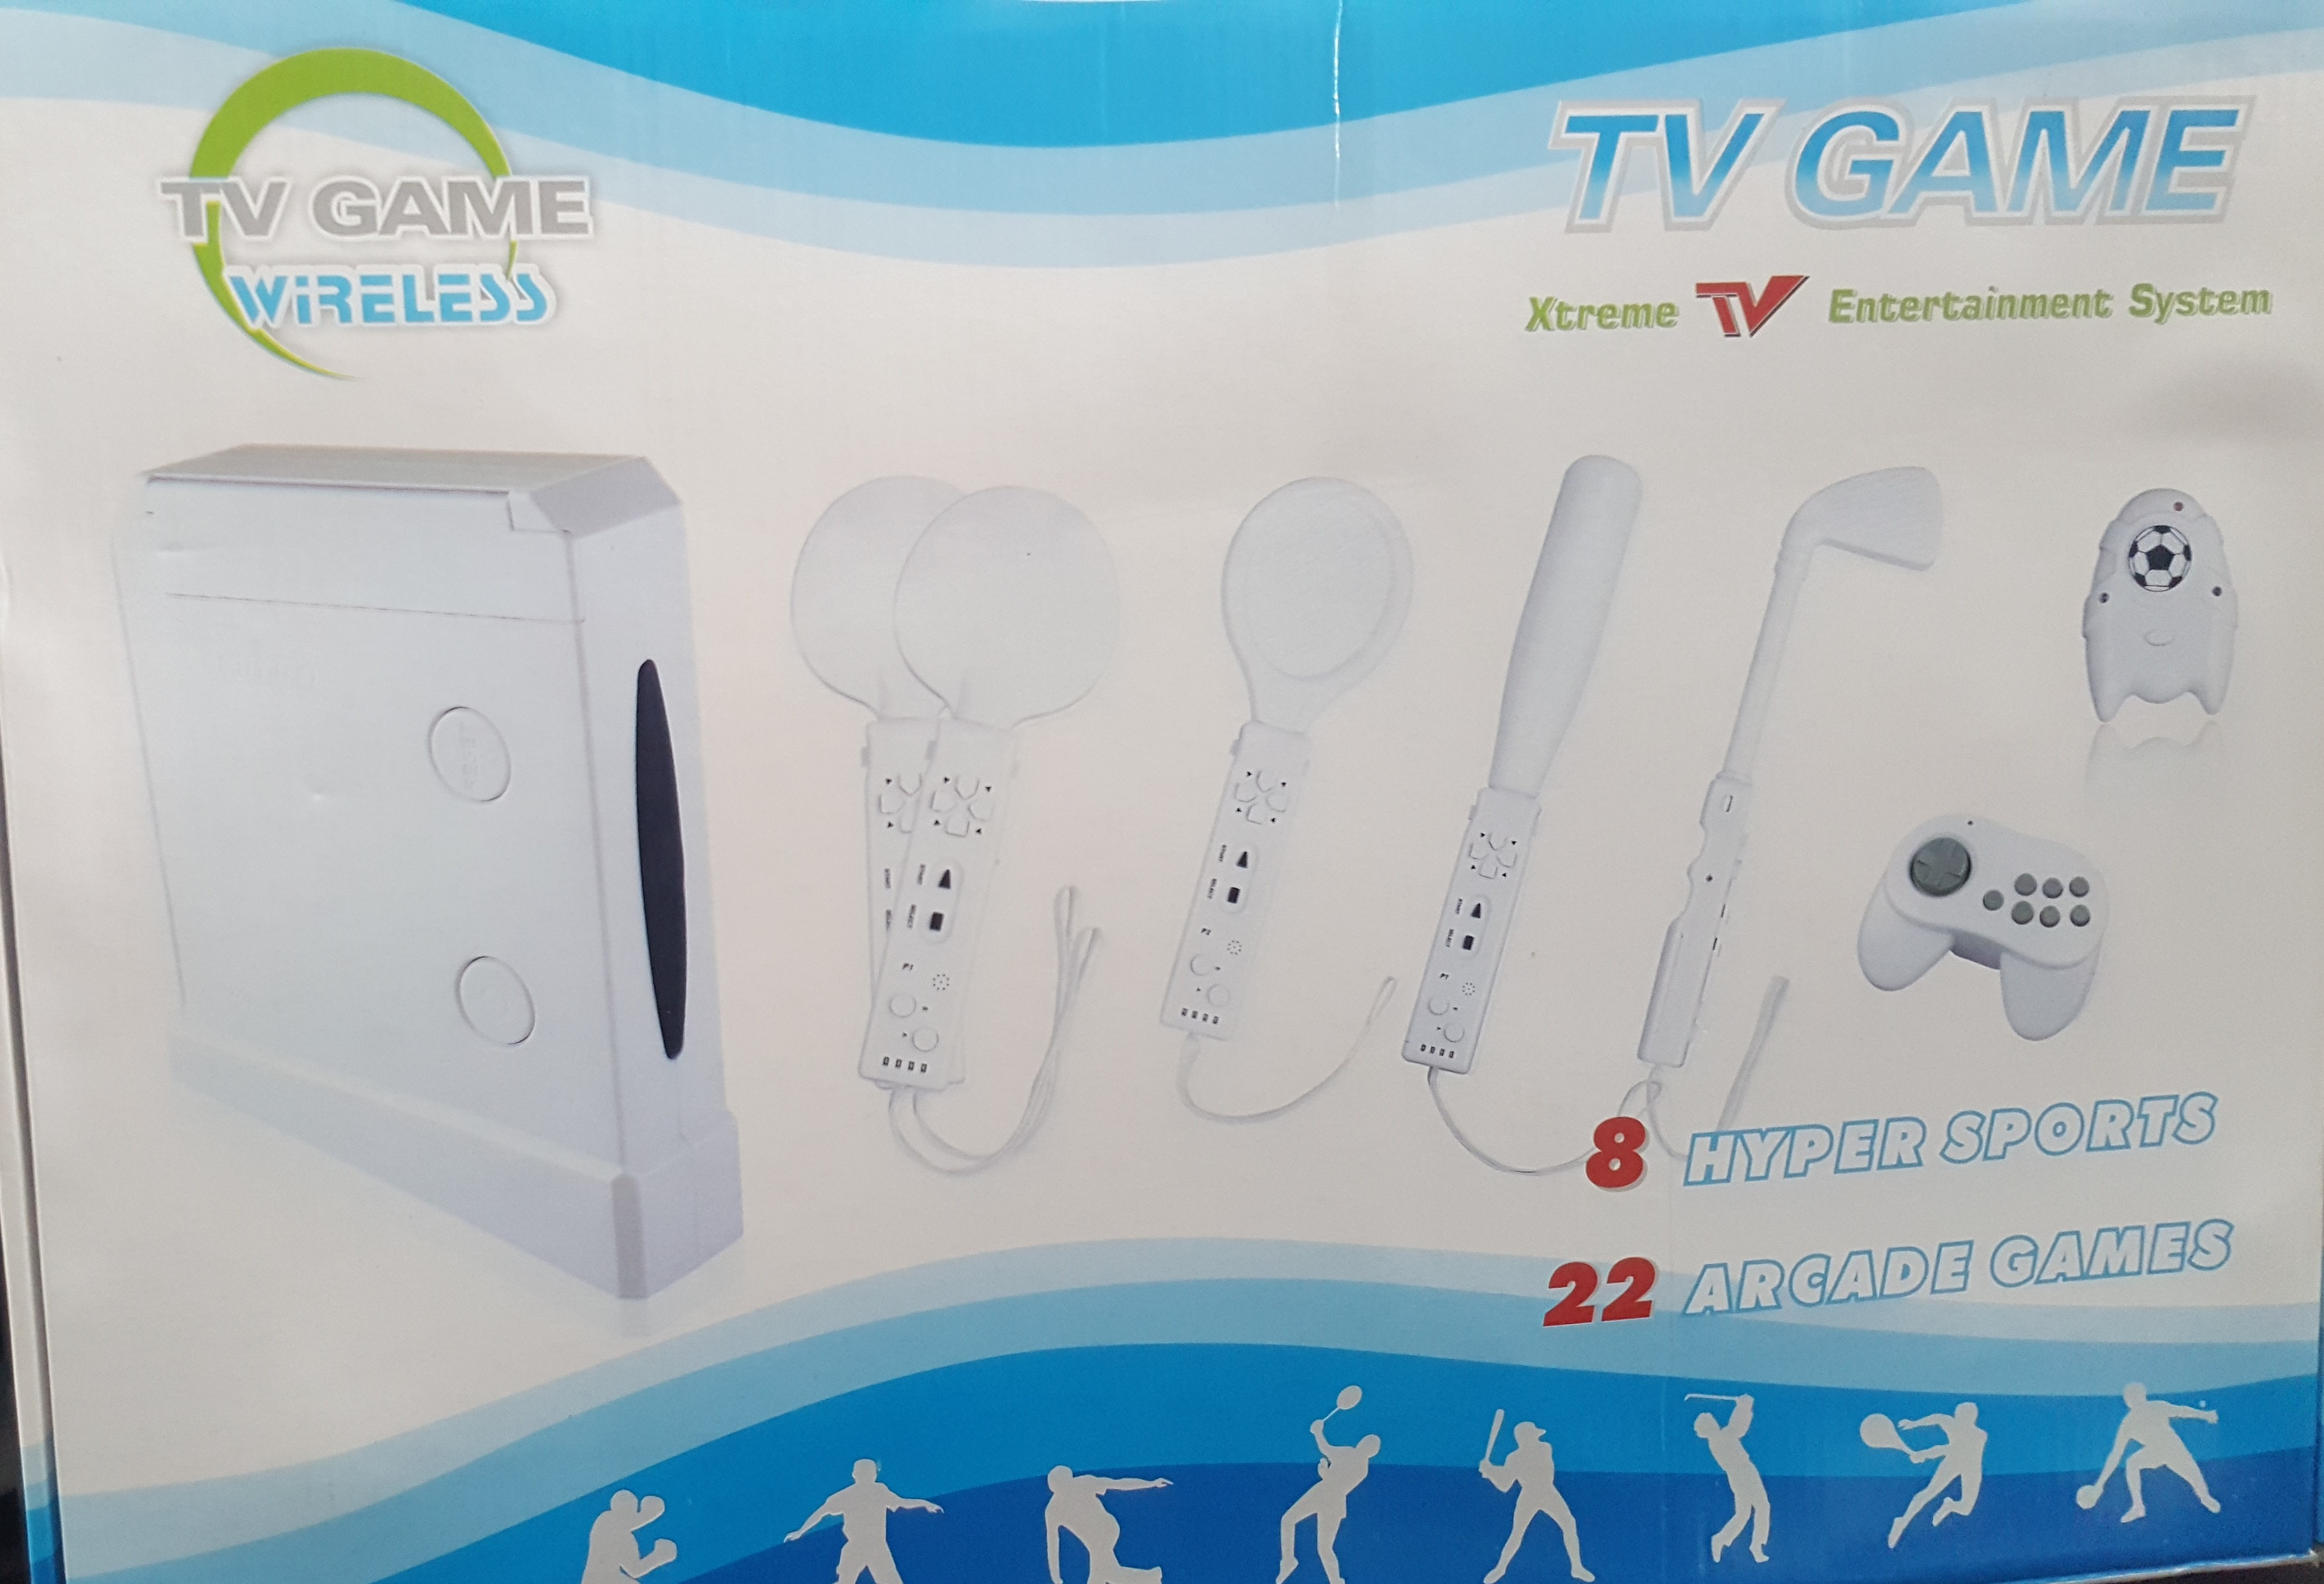 CONSOLE GAMING WIRELESS TV GAME 1 ME 8 GAMES AND SPORTS 22 ARCADE AND  CONTROLS FOR EVERY SPORT